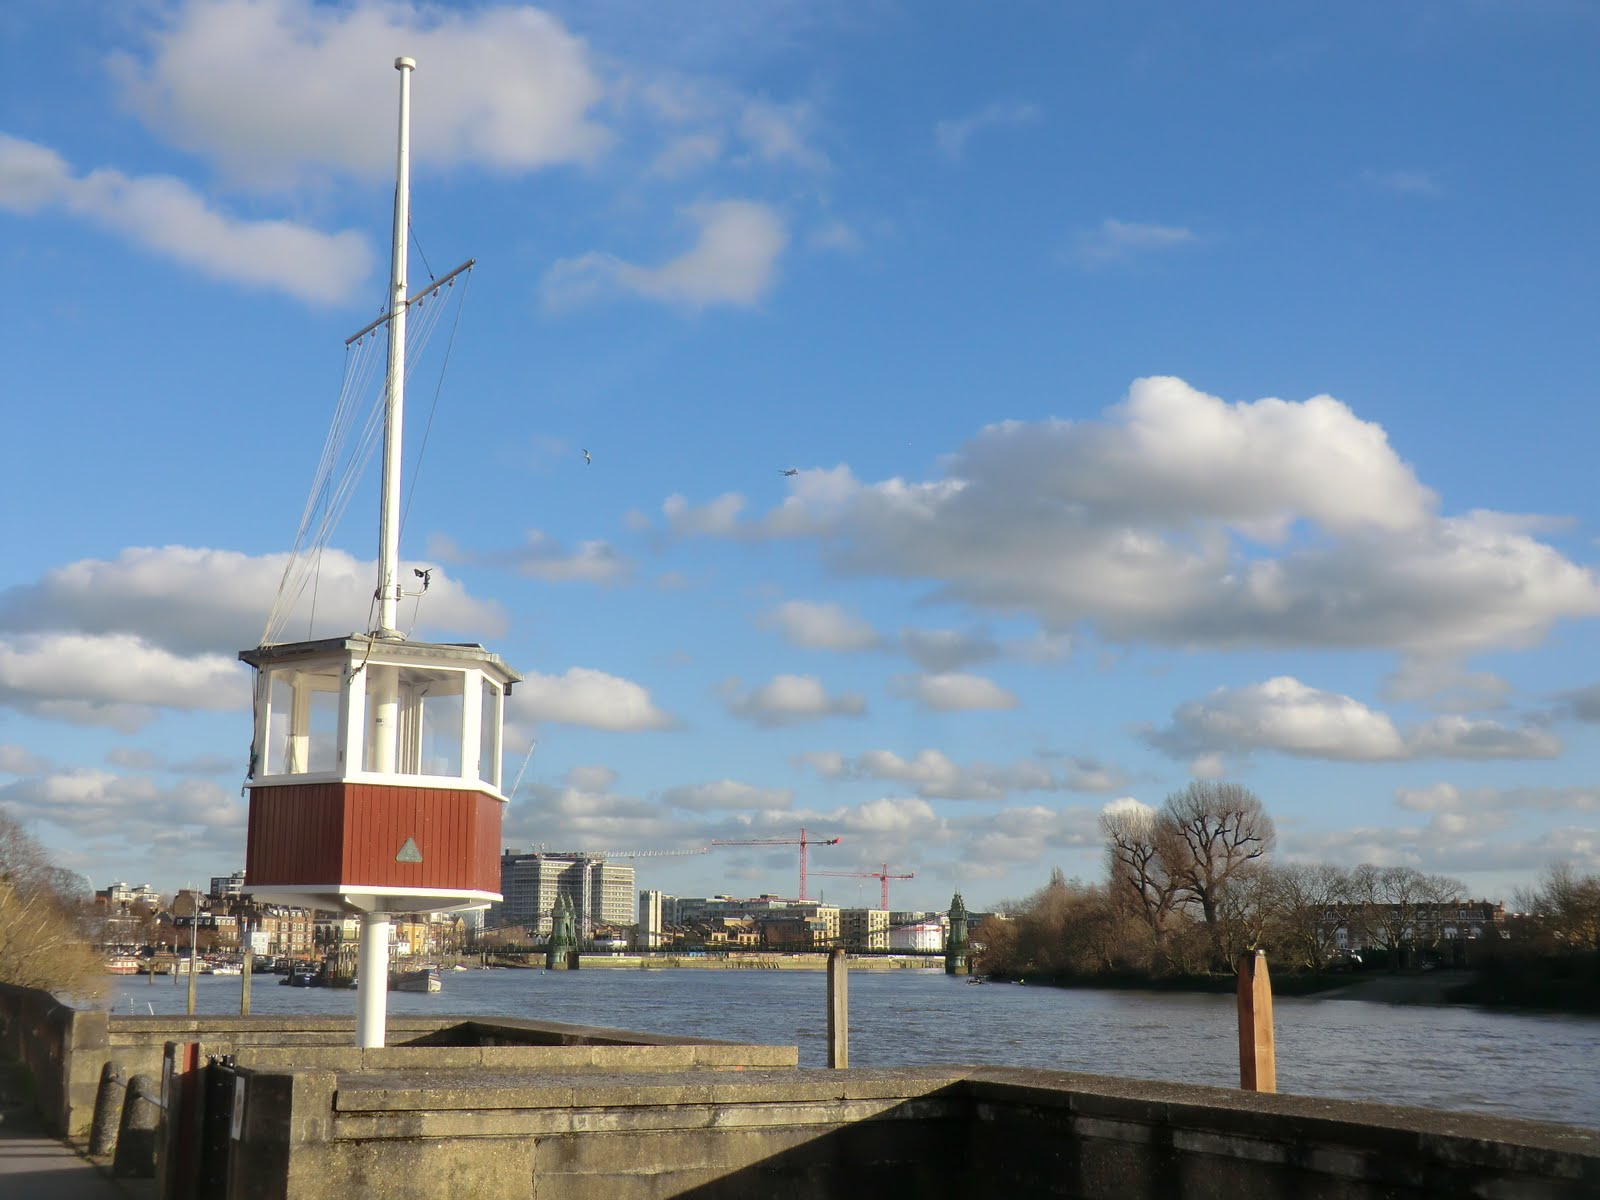 CIMG2556 River Thames at the London Corinthian Sailing Club